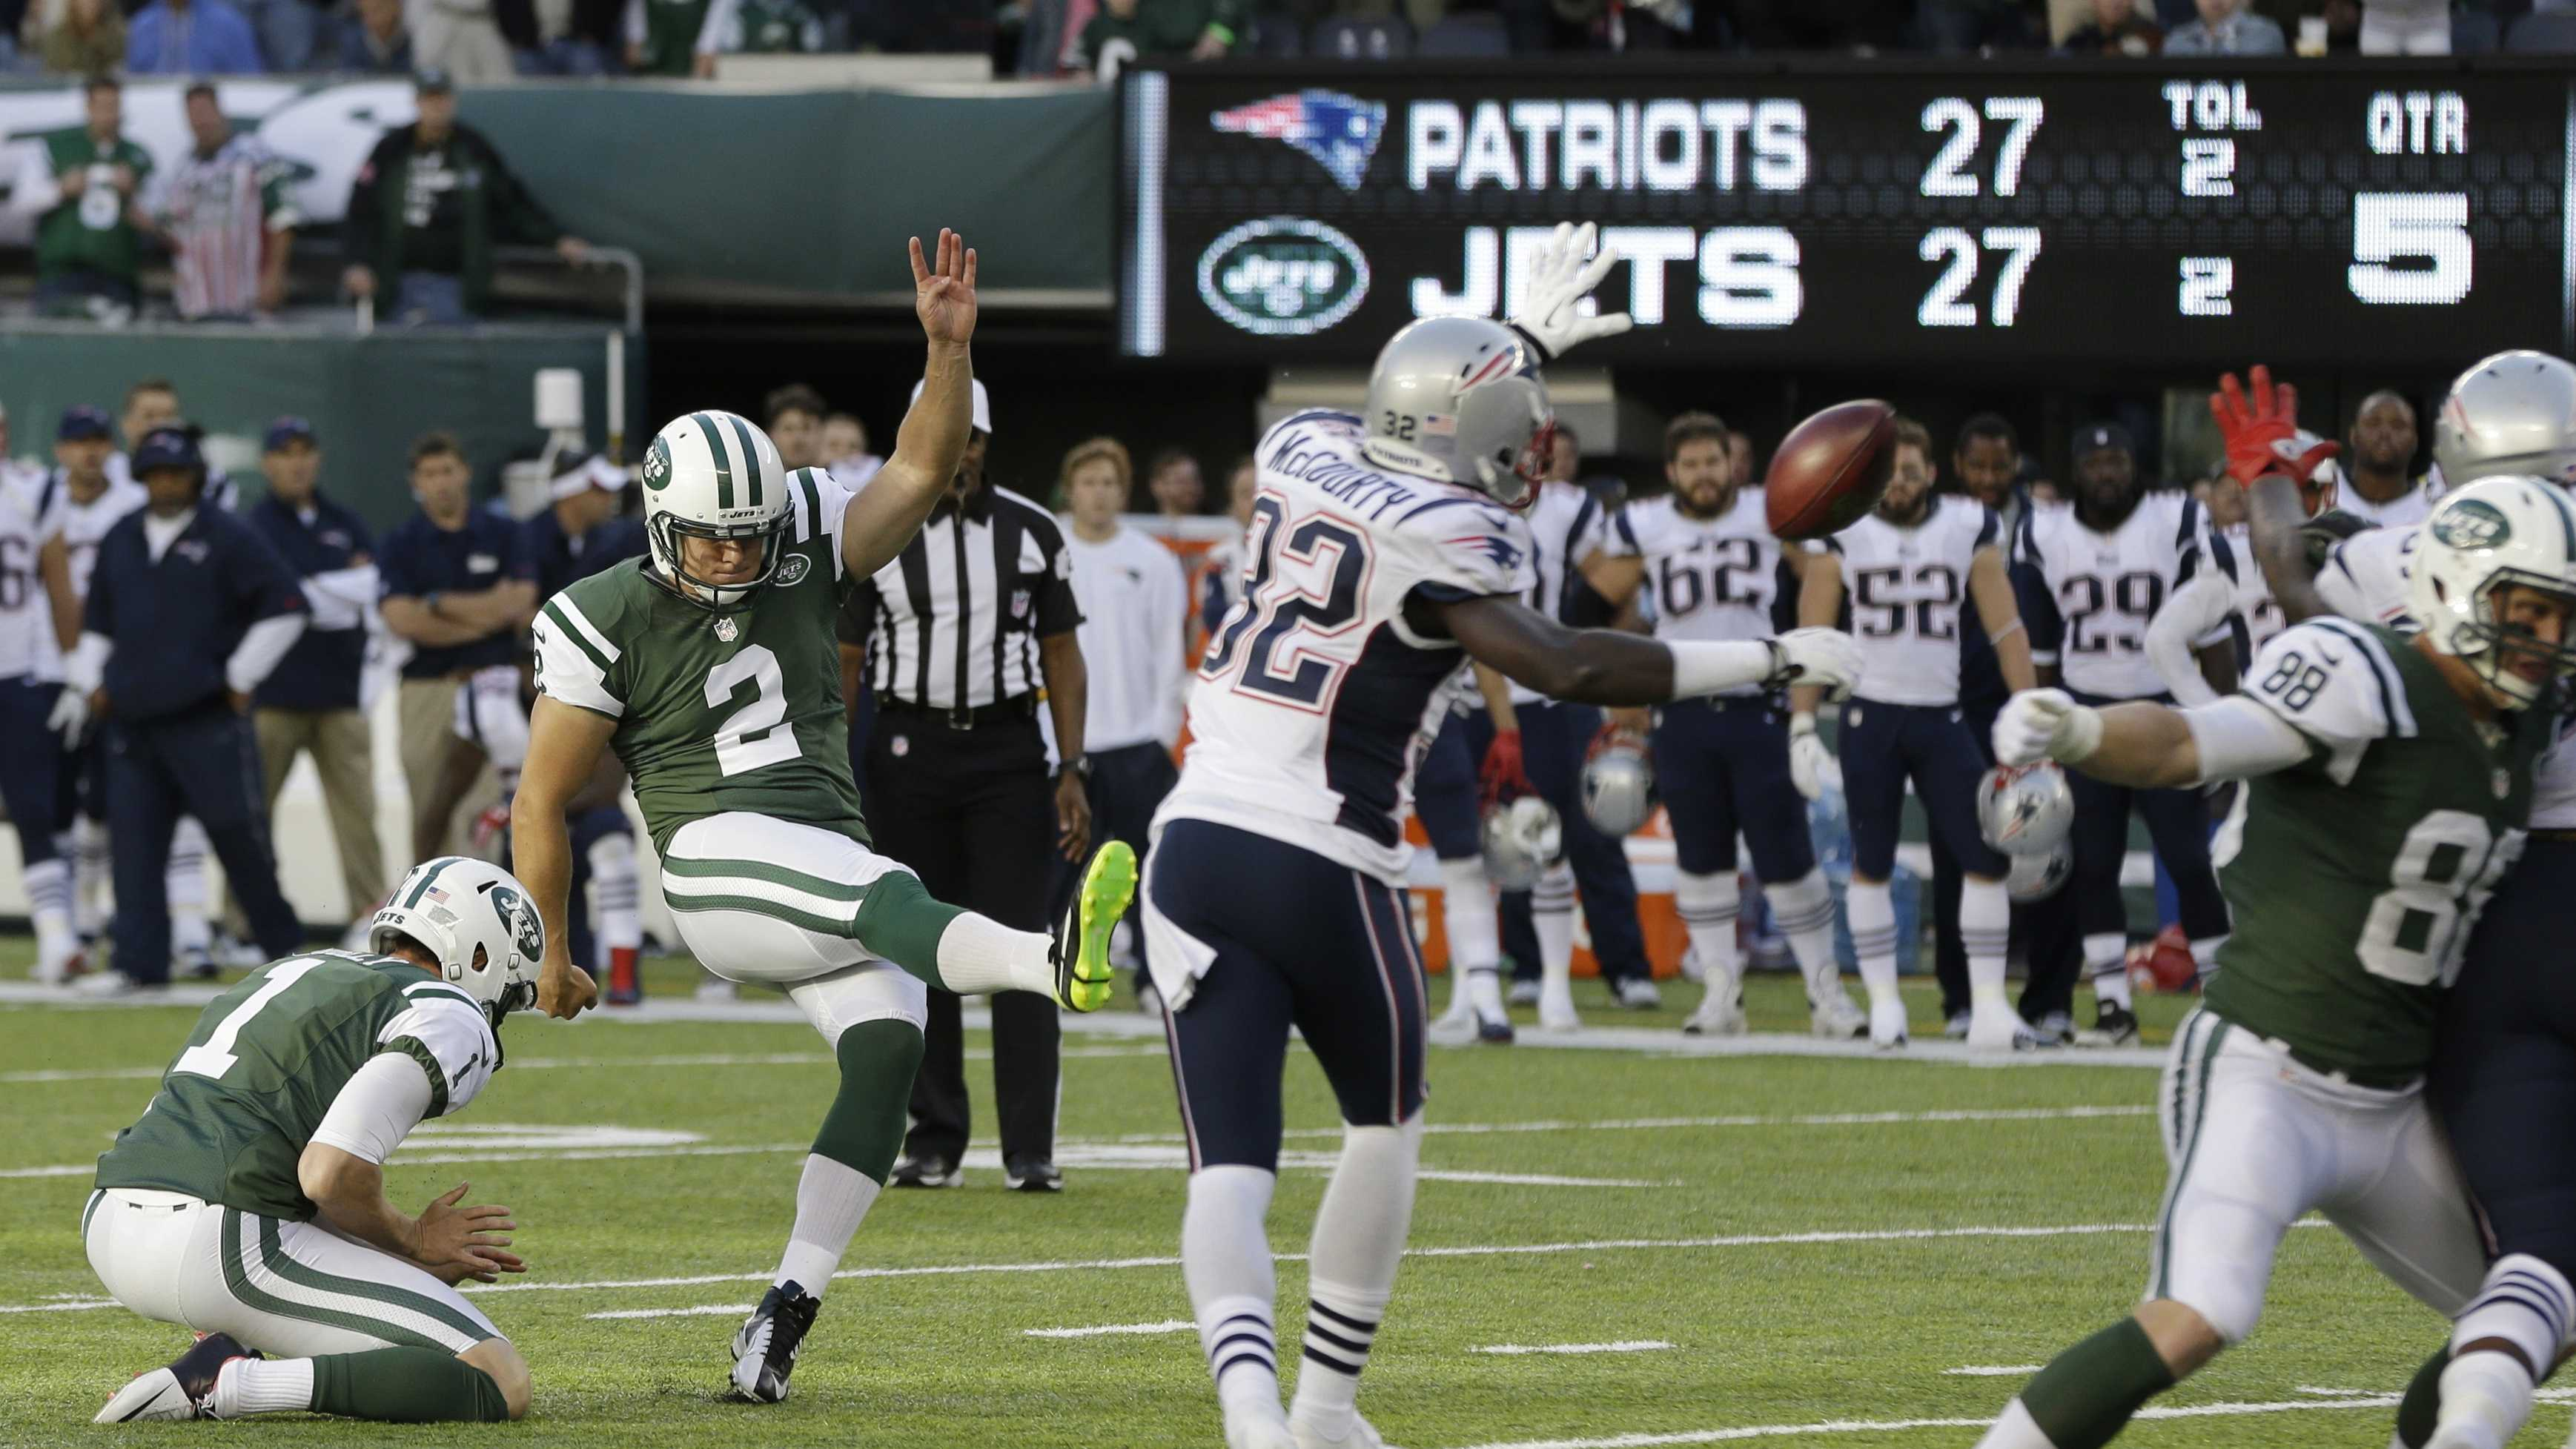 New York Jets kicker Nick Folk (2) kicks a field goal to win the game during overtime of an NFL football game against the New England Patriots Sunday, Oct. 20, 2013 in East Rutherford, N.J. The Jets won the game 30-27.